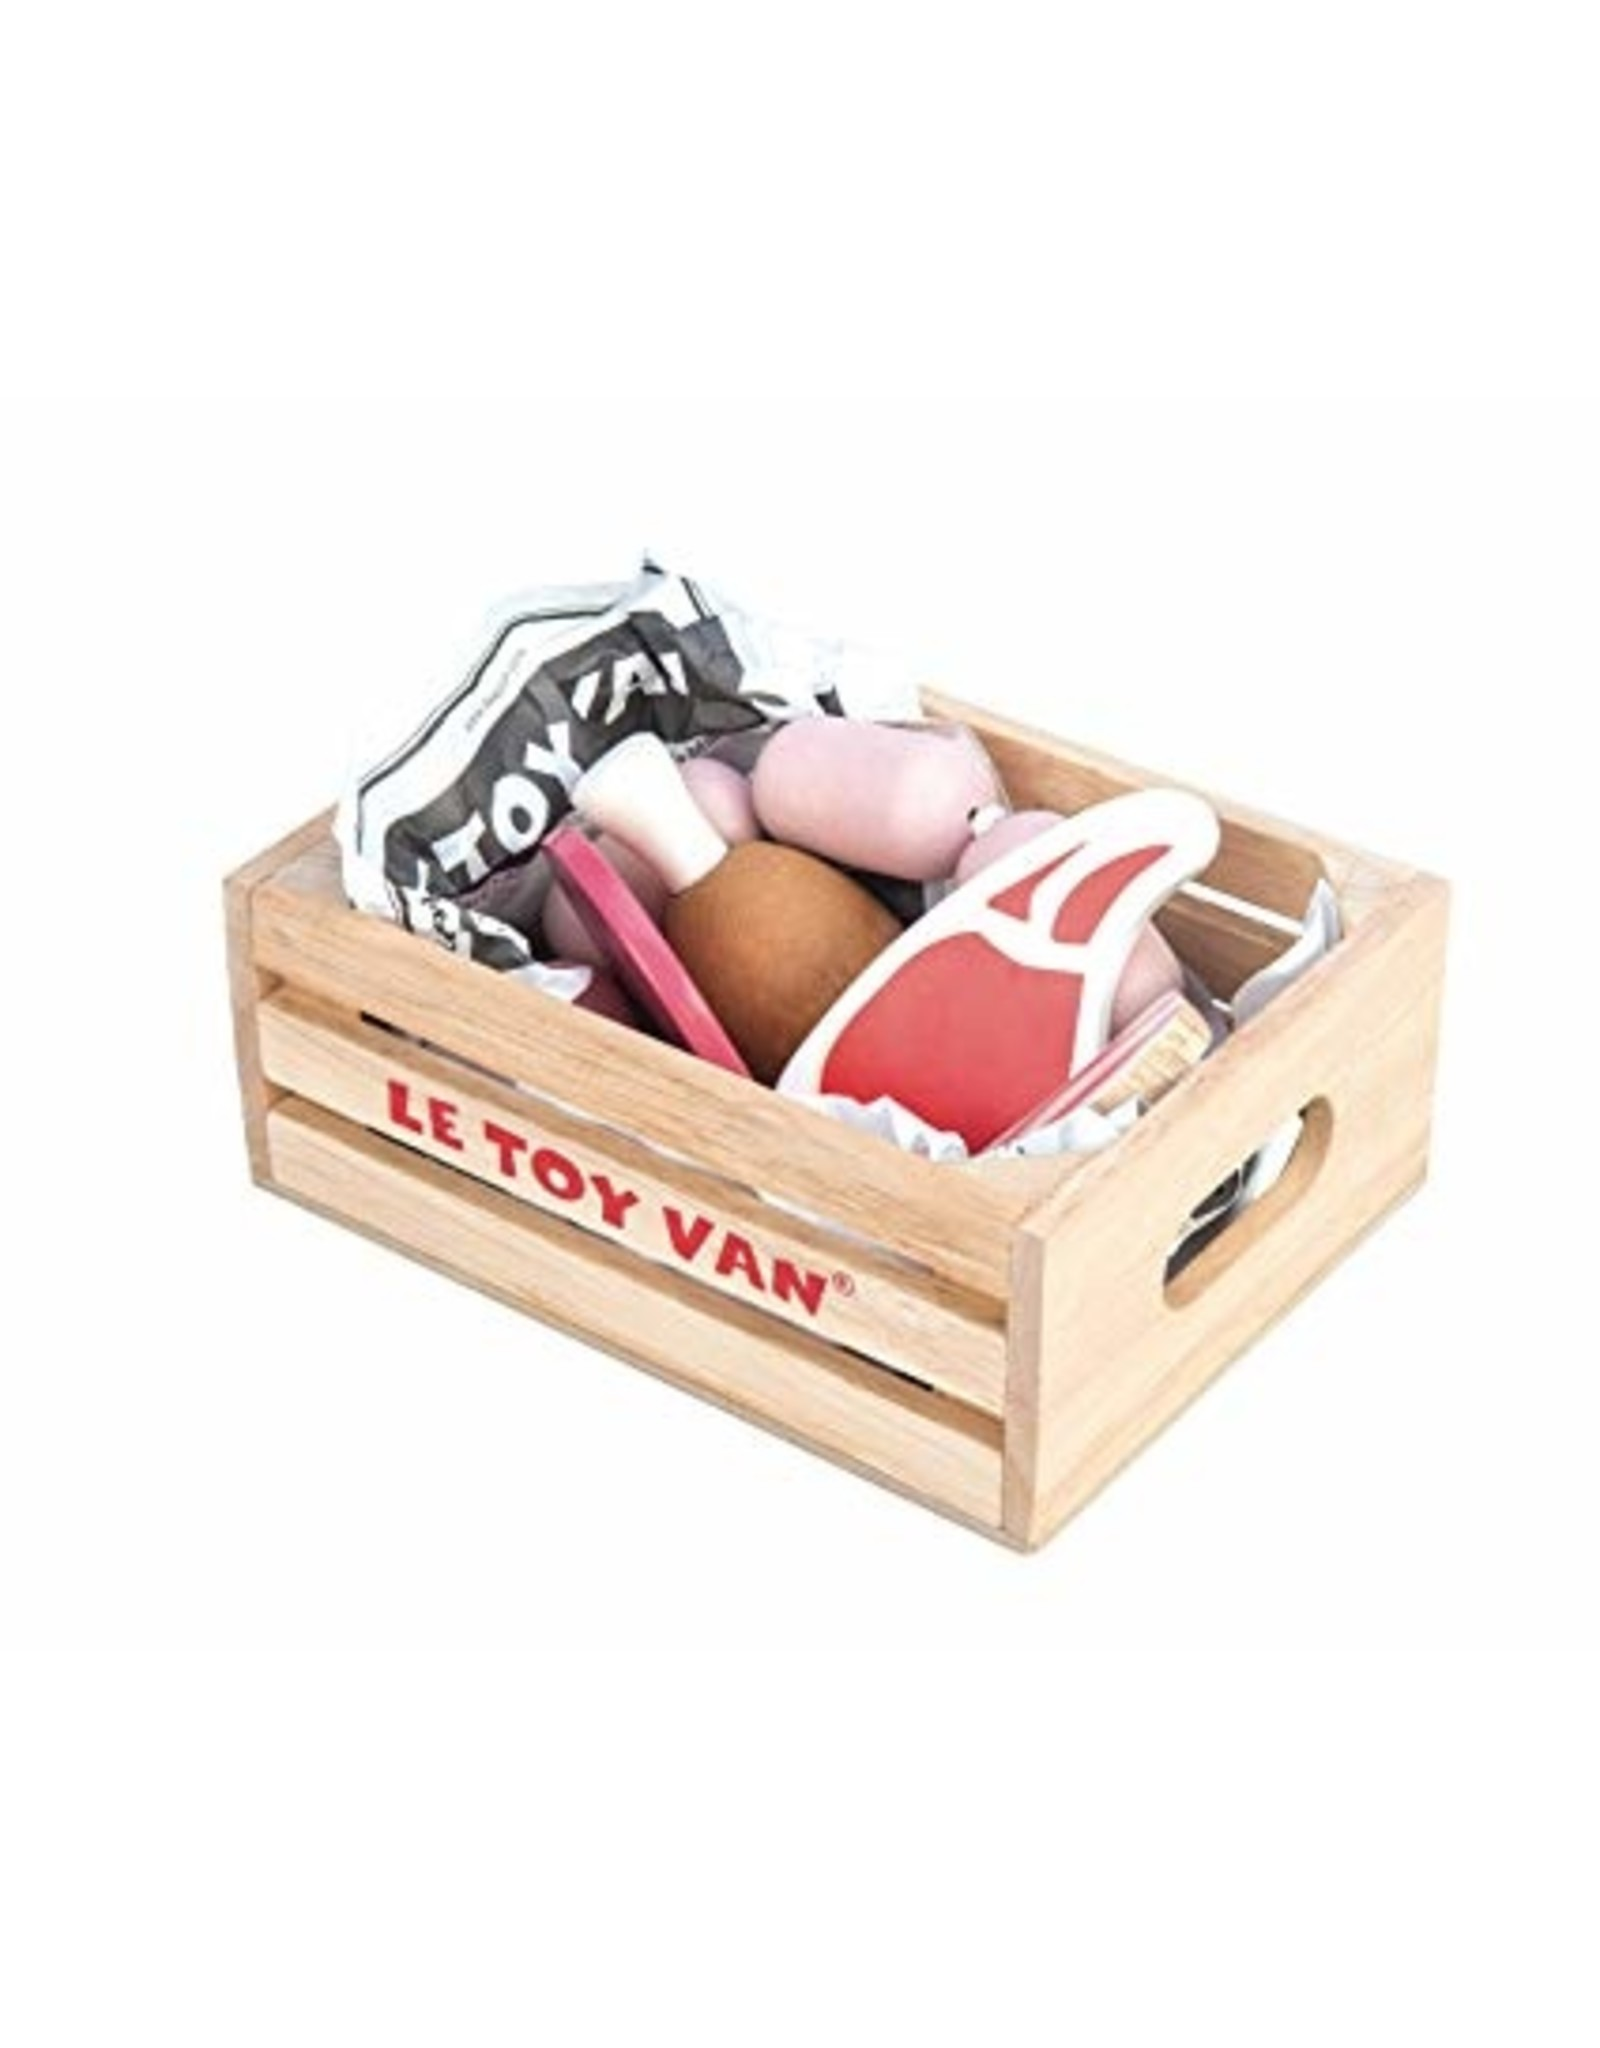 Le Toy Brand Market Crate Meat